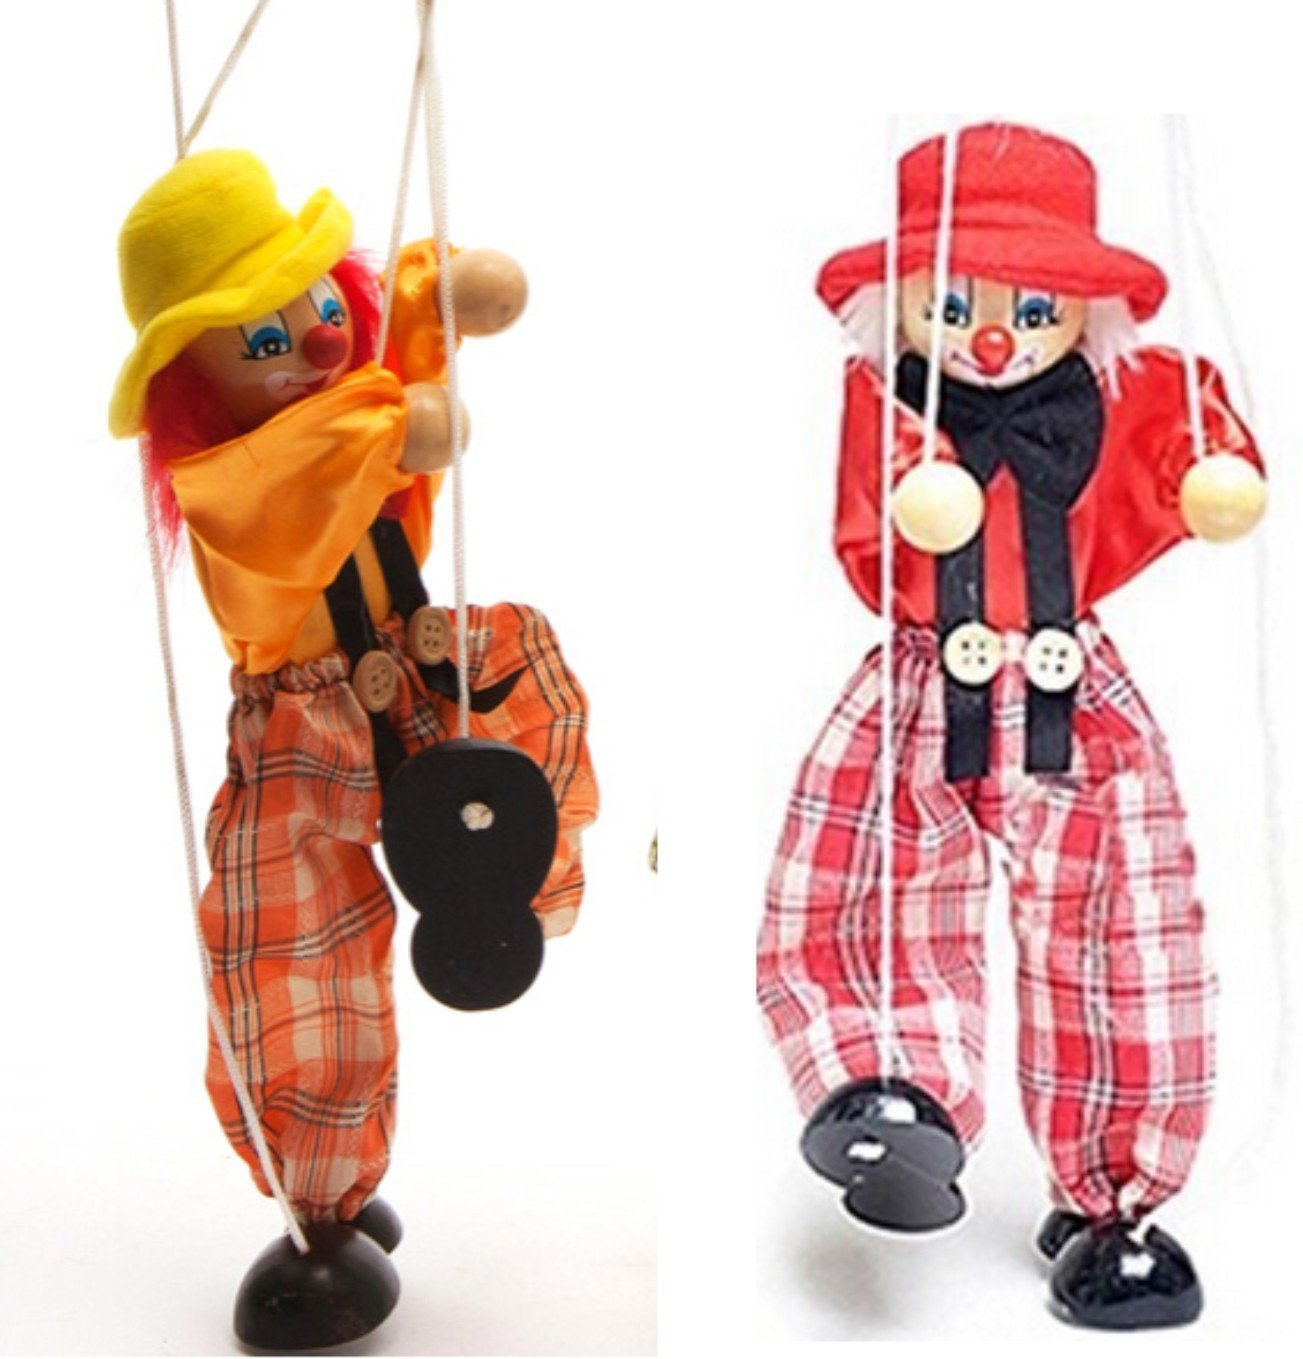 SWONVI 2 Packs Clown Hand Marionette Puppet Children's Wooden Marionette Toys Colorful Marionette Puppet Doll Parent-Child Interactive Toys-Yellow and Red